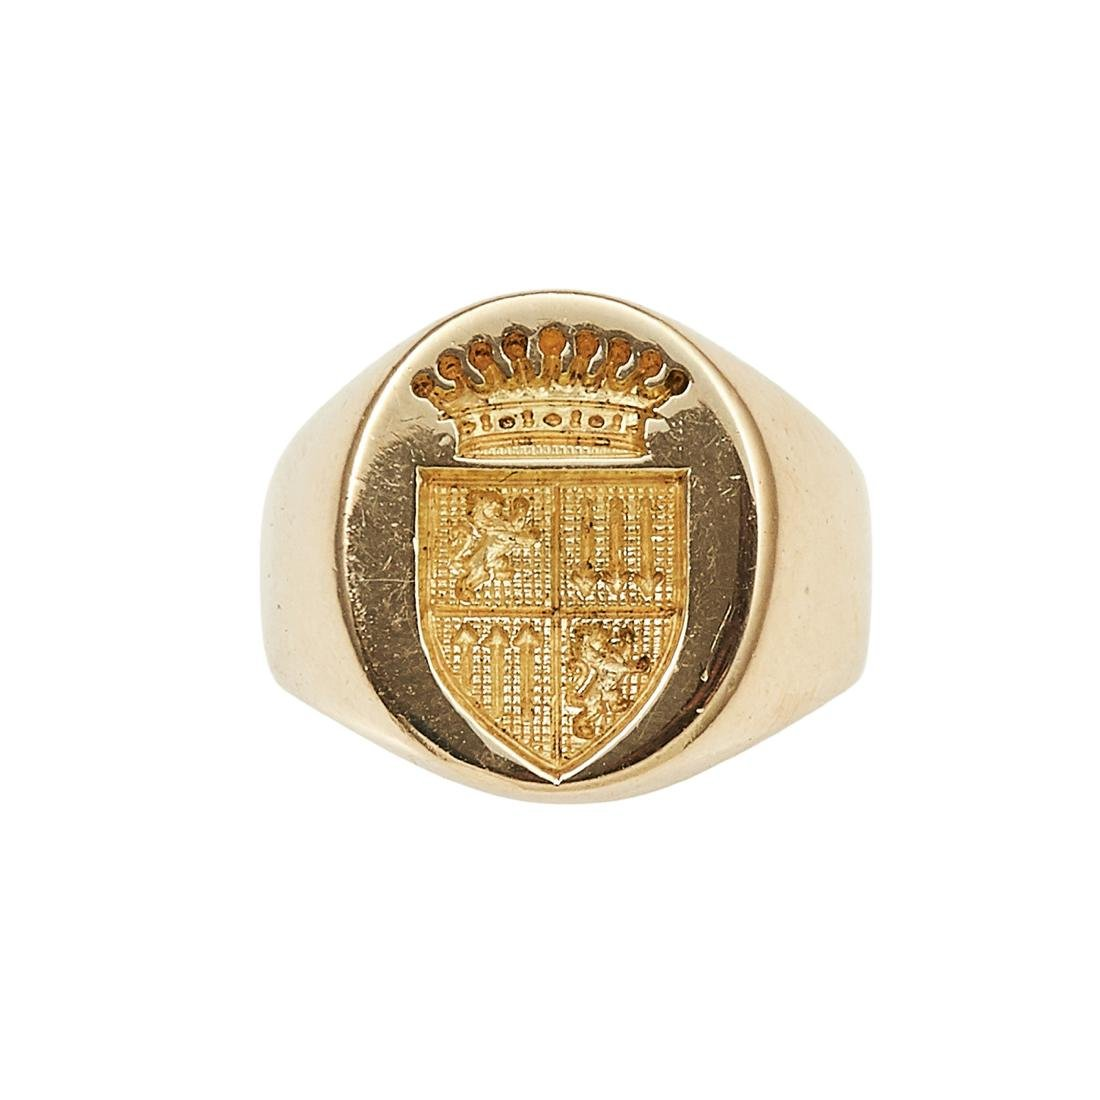 AN INTAGLIO SEAL SIGNET RING in high carat yellow gold,